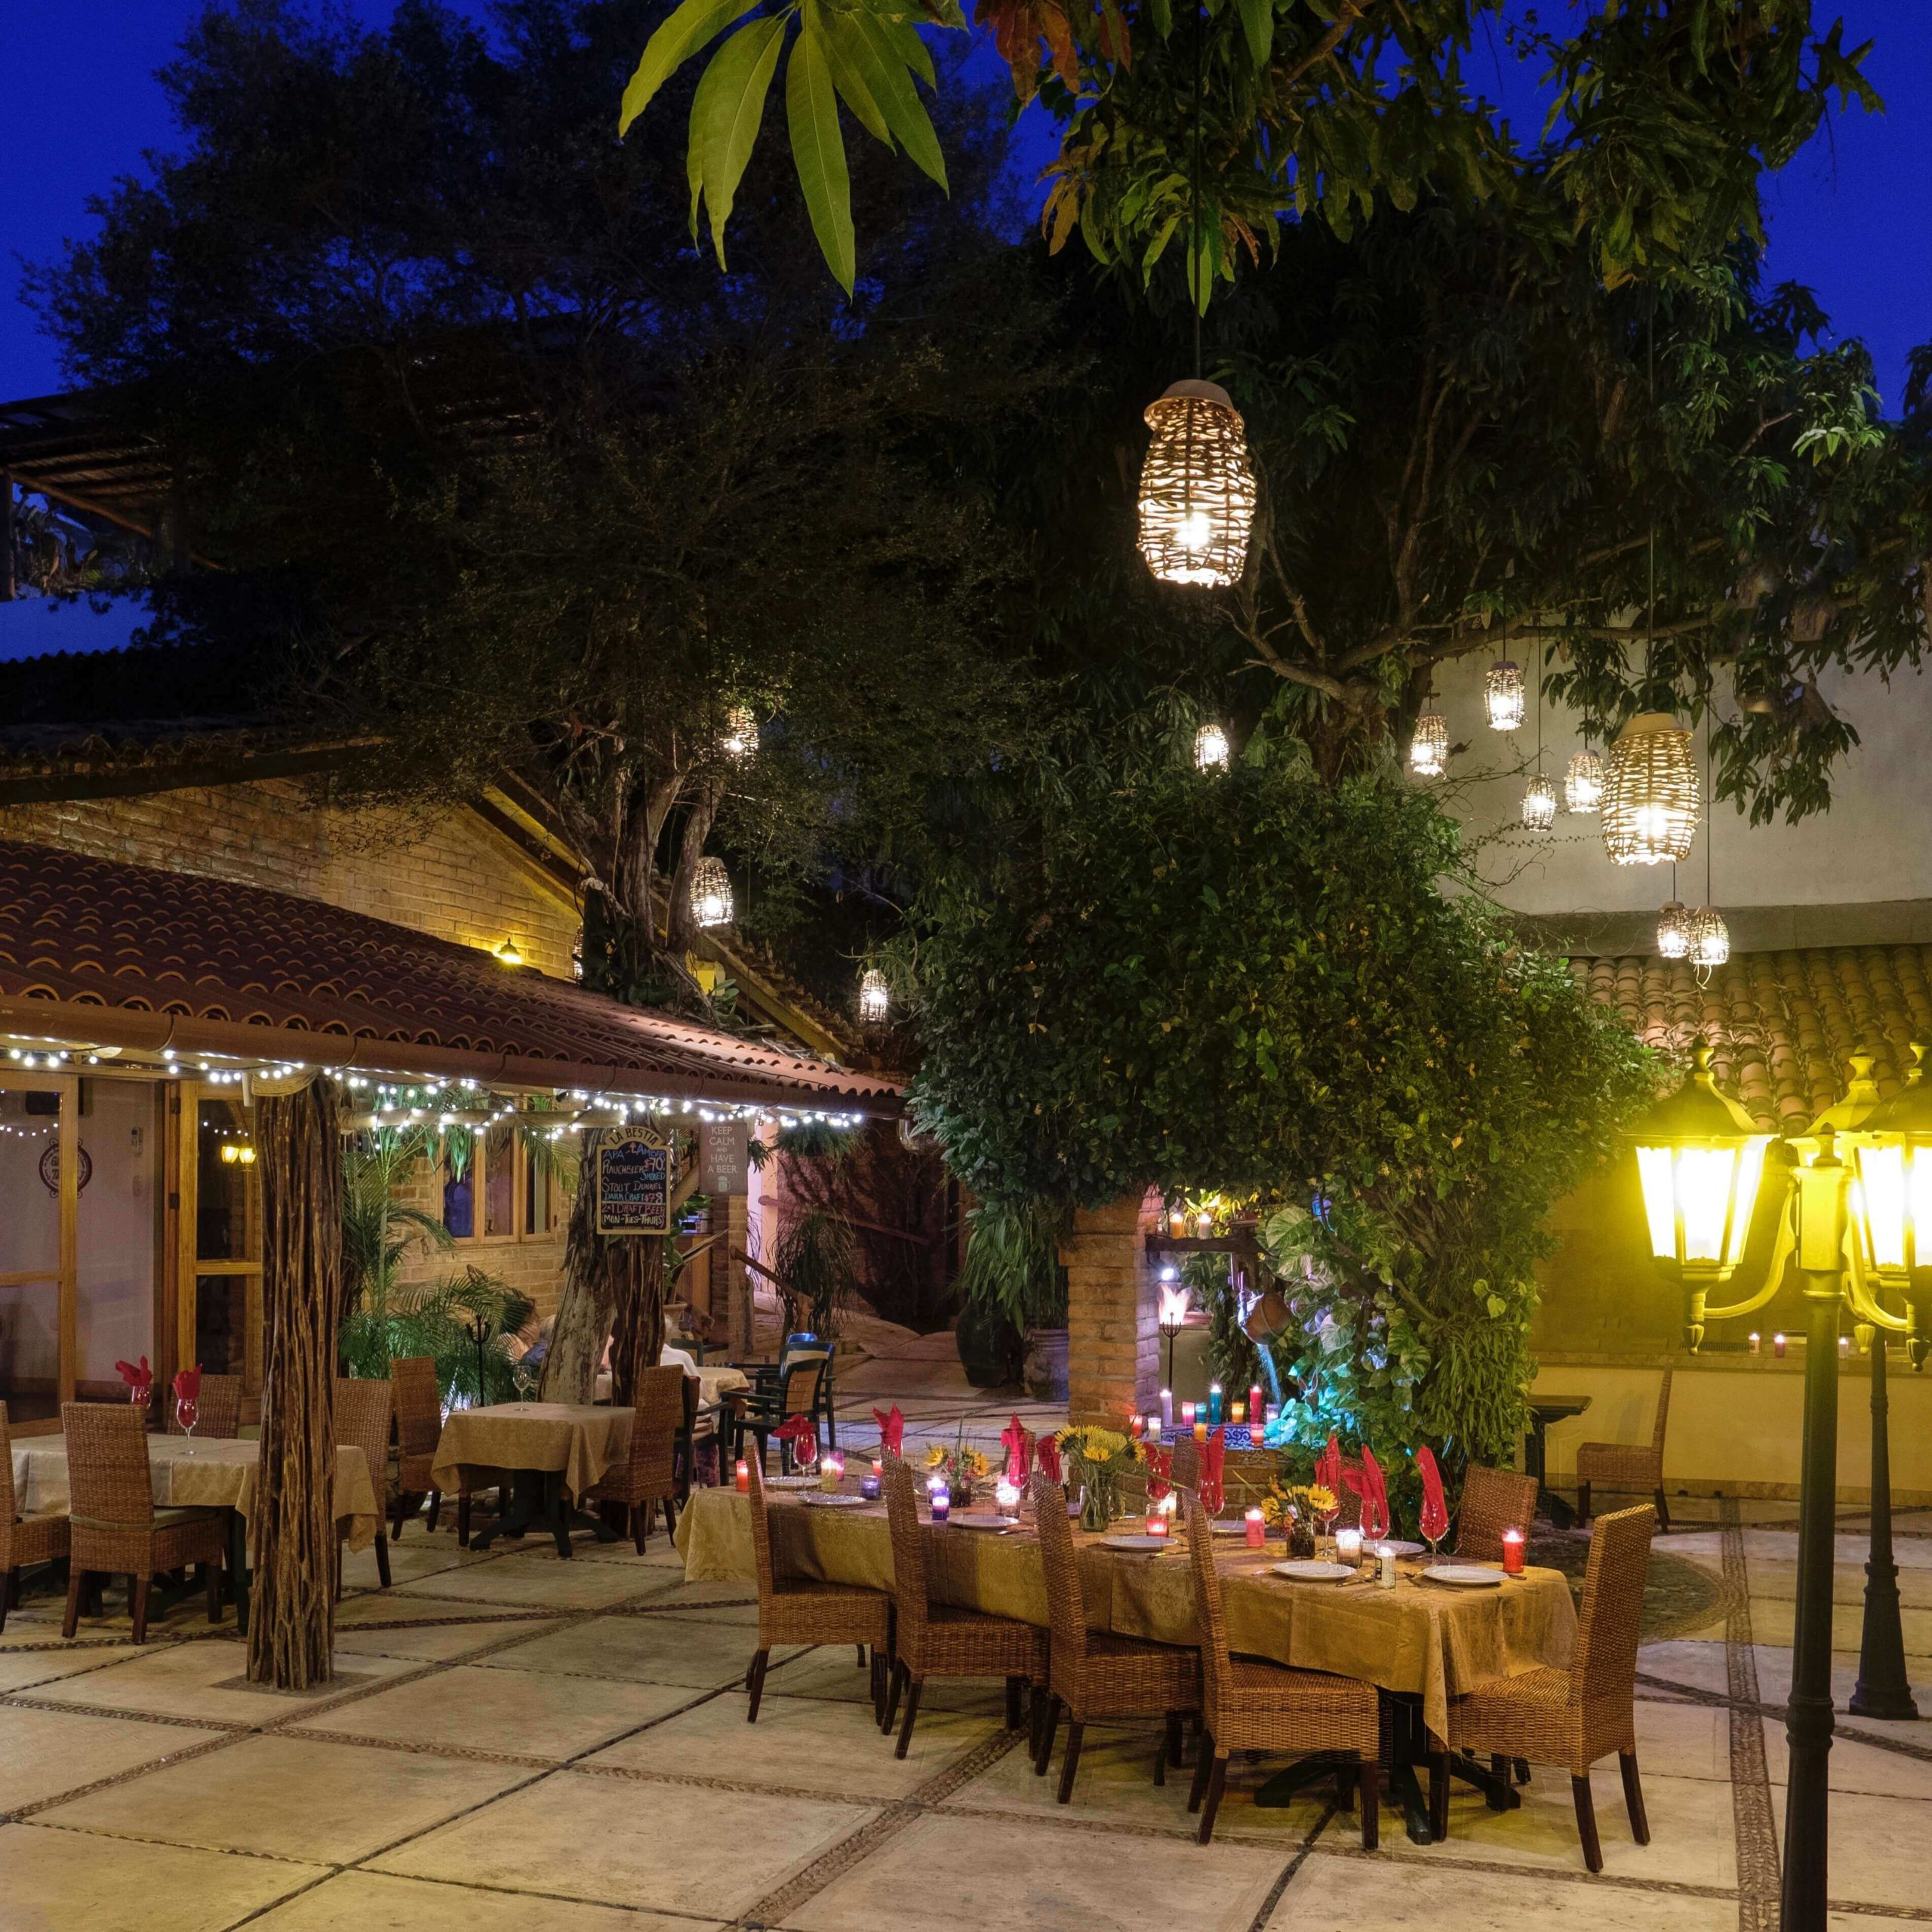 The Hacienda Alemana patio at nighttime